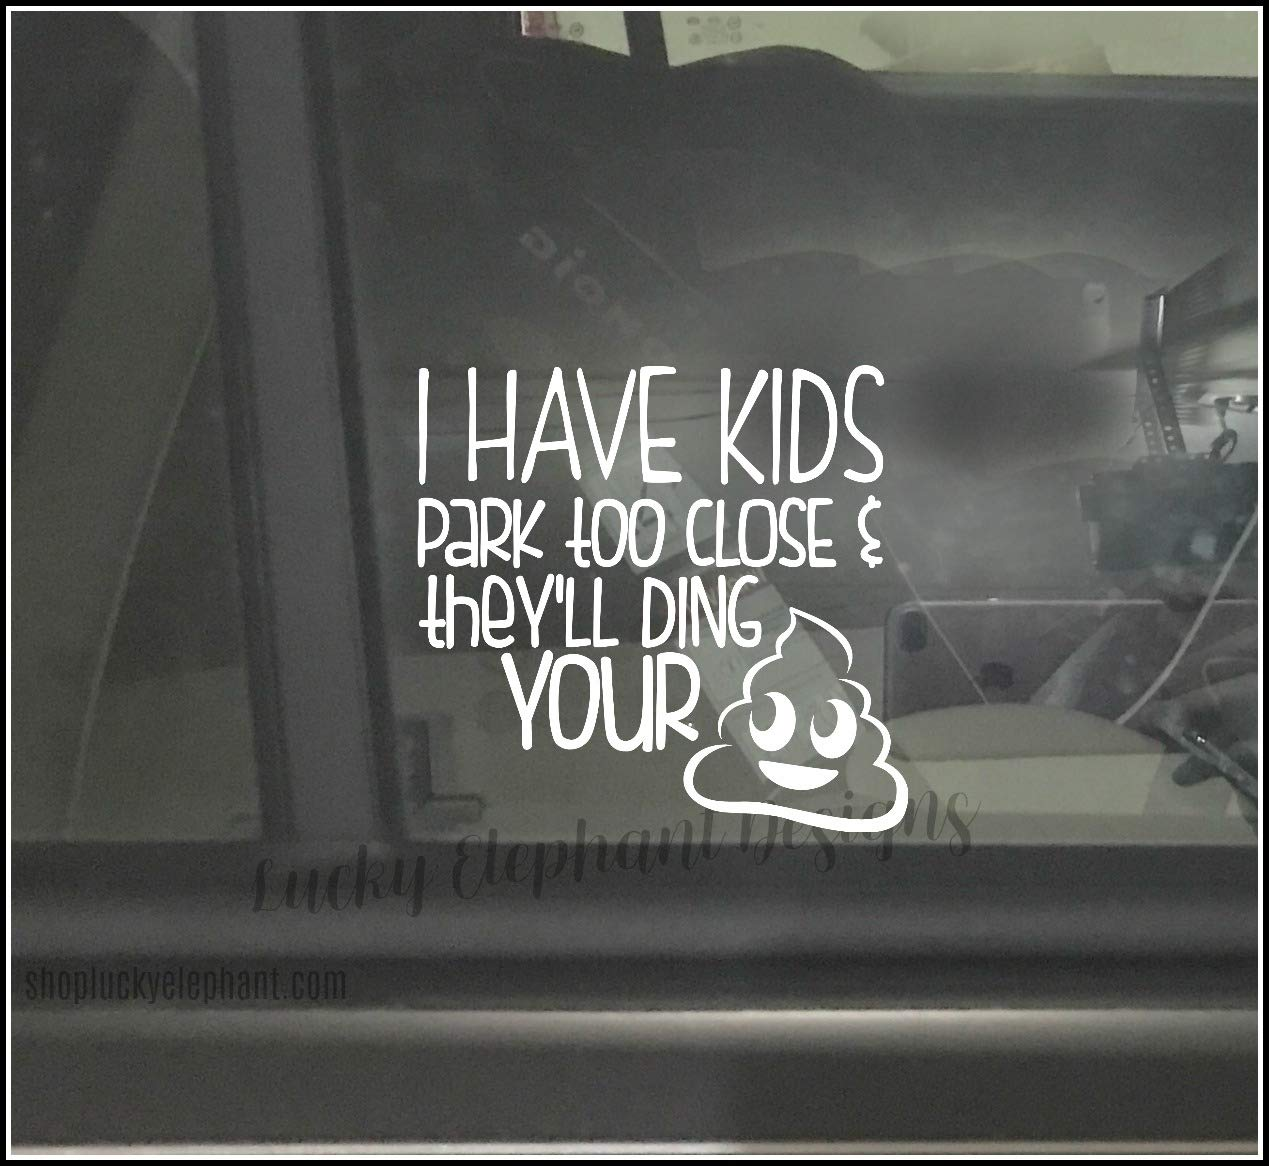 I Have Kids Park Too Close and Theyll Ding Your Shit Car Decal Park Too Close Car Decal Kids Warning Car Decal Many Colors Available!